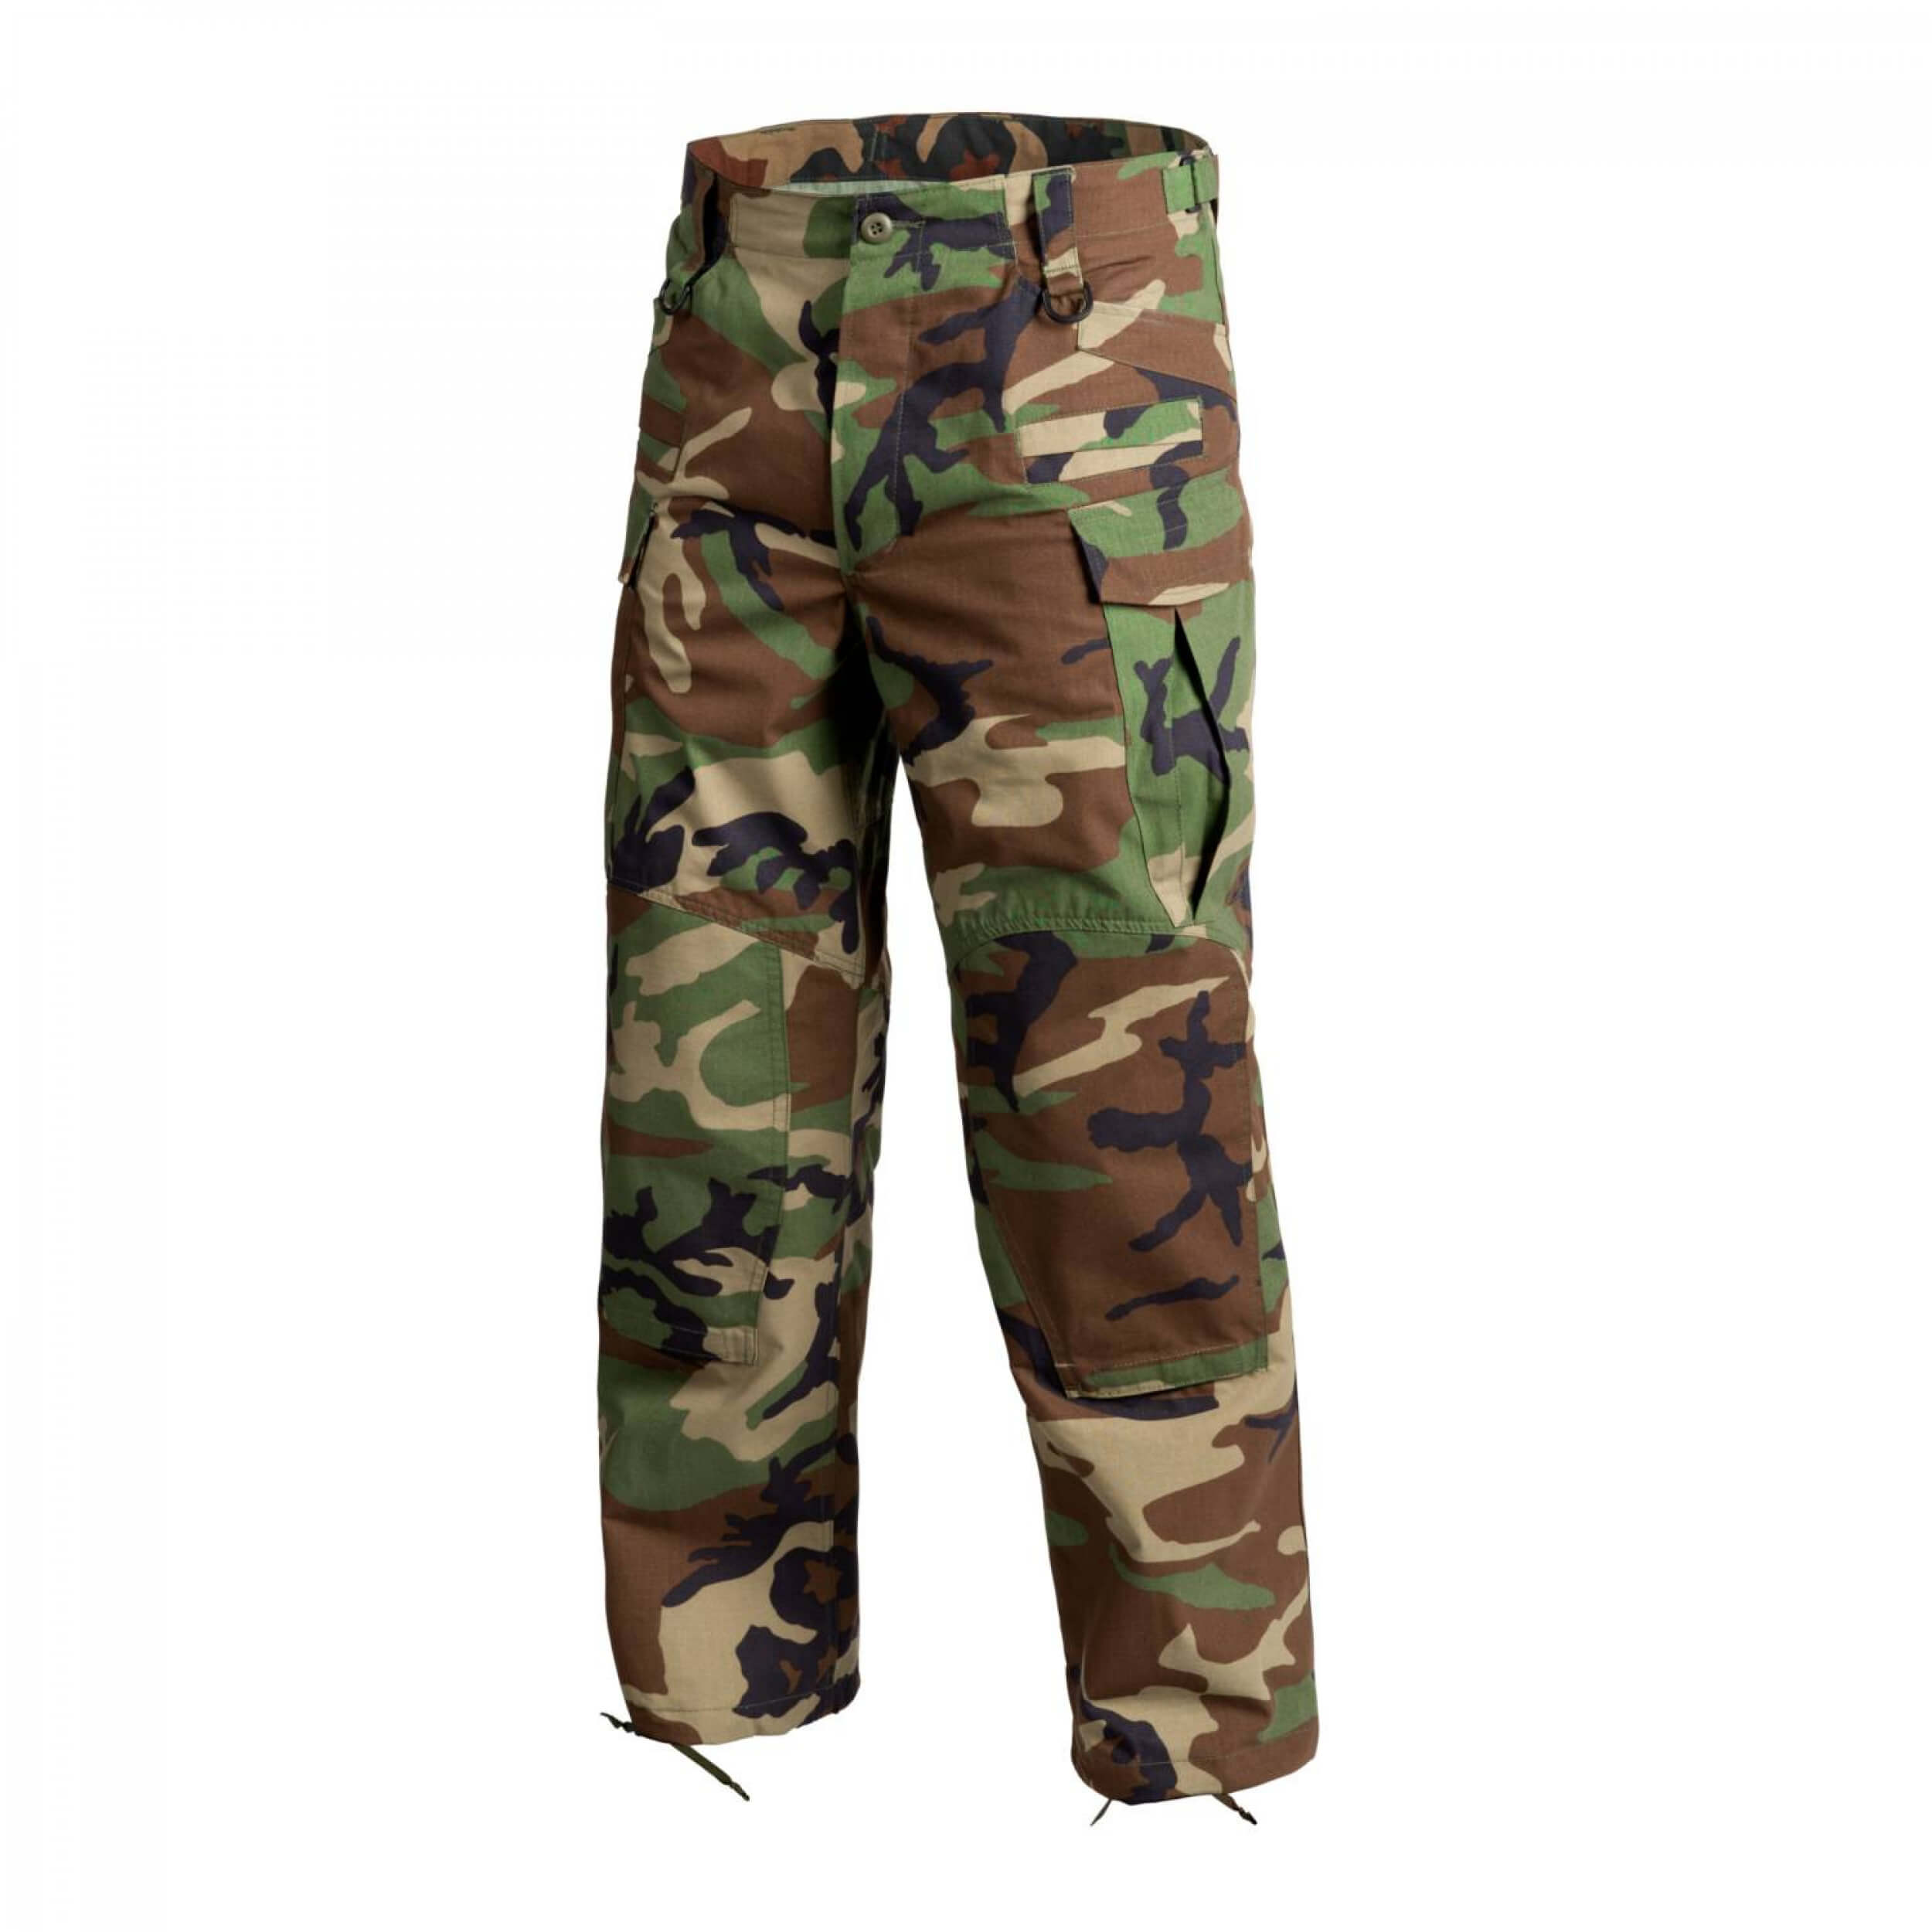 Helikon-Tex SFU Next Pants -PolyCotton Ripstop- US Woodland